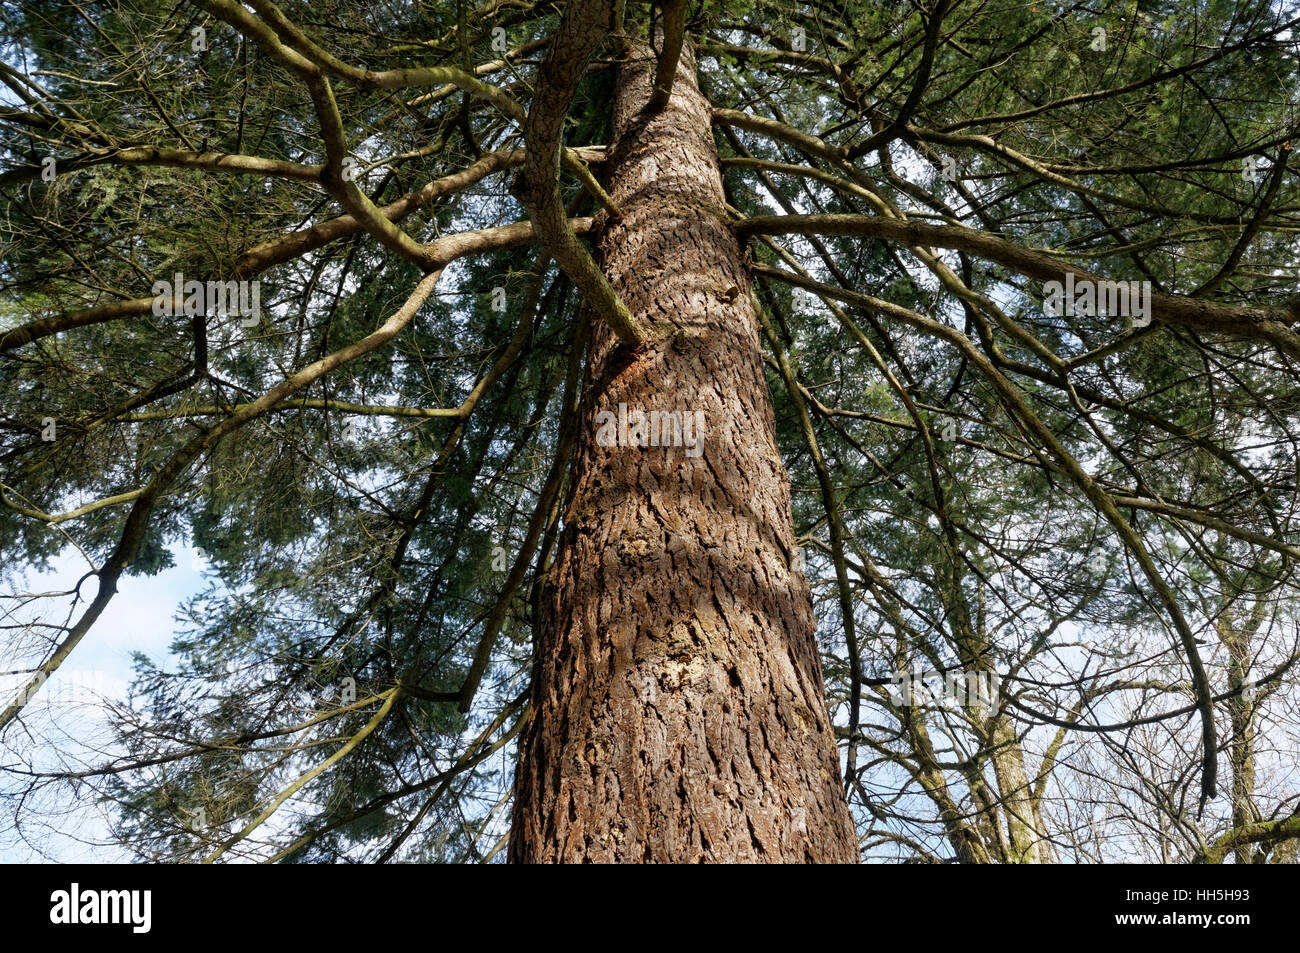 Looking up into branches of a Douglas fir tree (Pseudotsuga menziesii) in Shaugnessy Park, Vancouver, British Columbia, - Stock Image